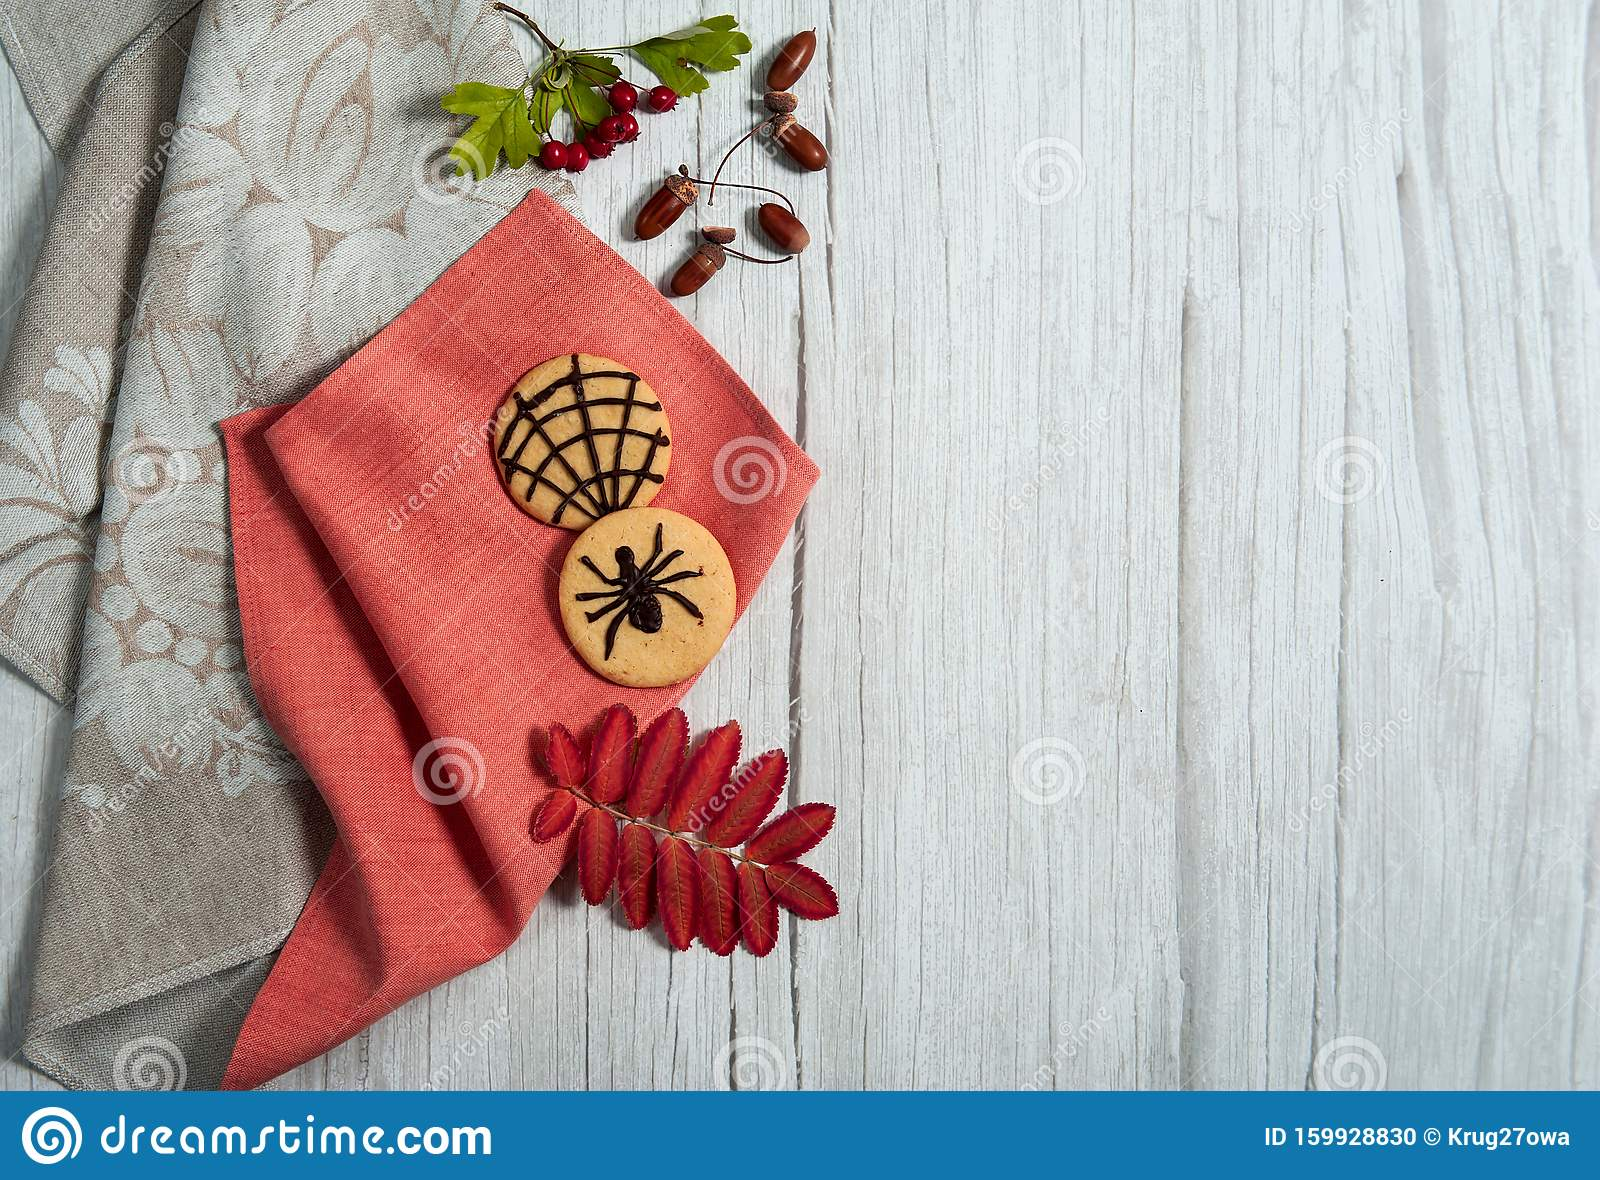 Homemade Cookies With Chocolate Spiders Hawthorn Berries Rowan Leaves Acorns Two Linen Napkins On A Light Wooden Background Stock Photo Image Of Creepy Close 159928830